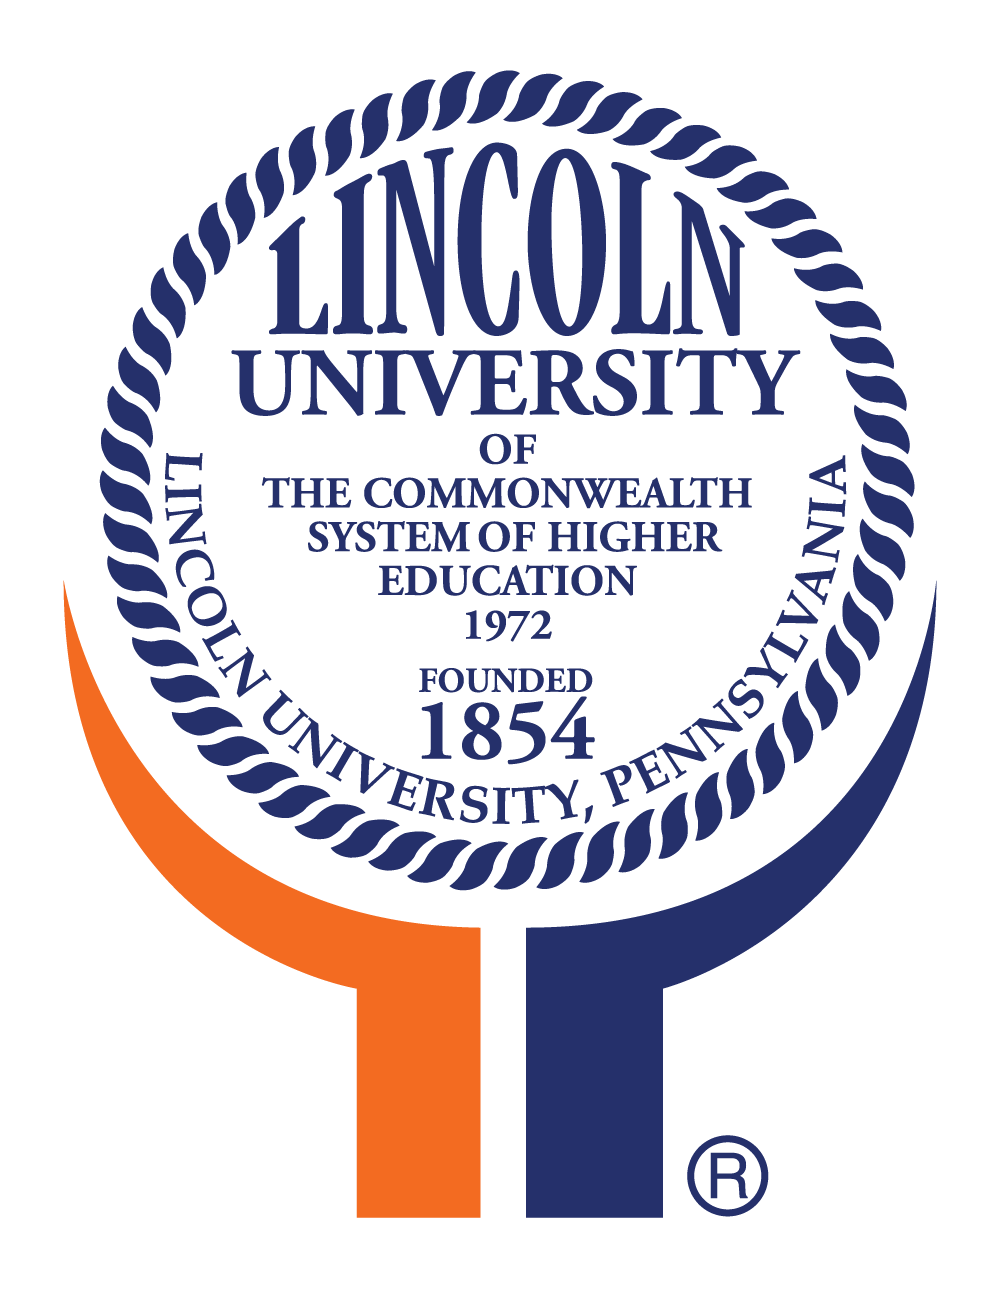 Lincoln University of The Commonwealth System of Higher Education 1972 - Founded 1854